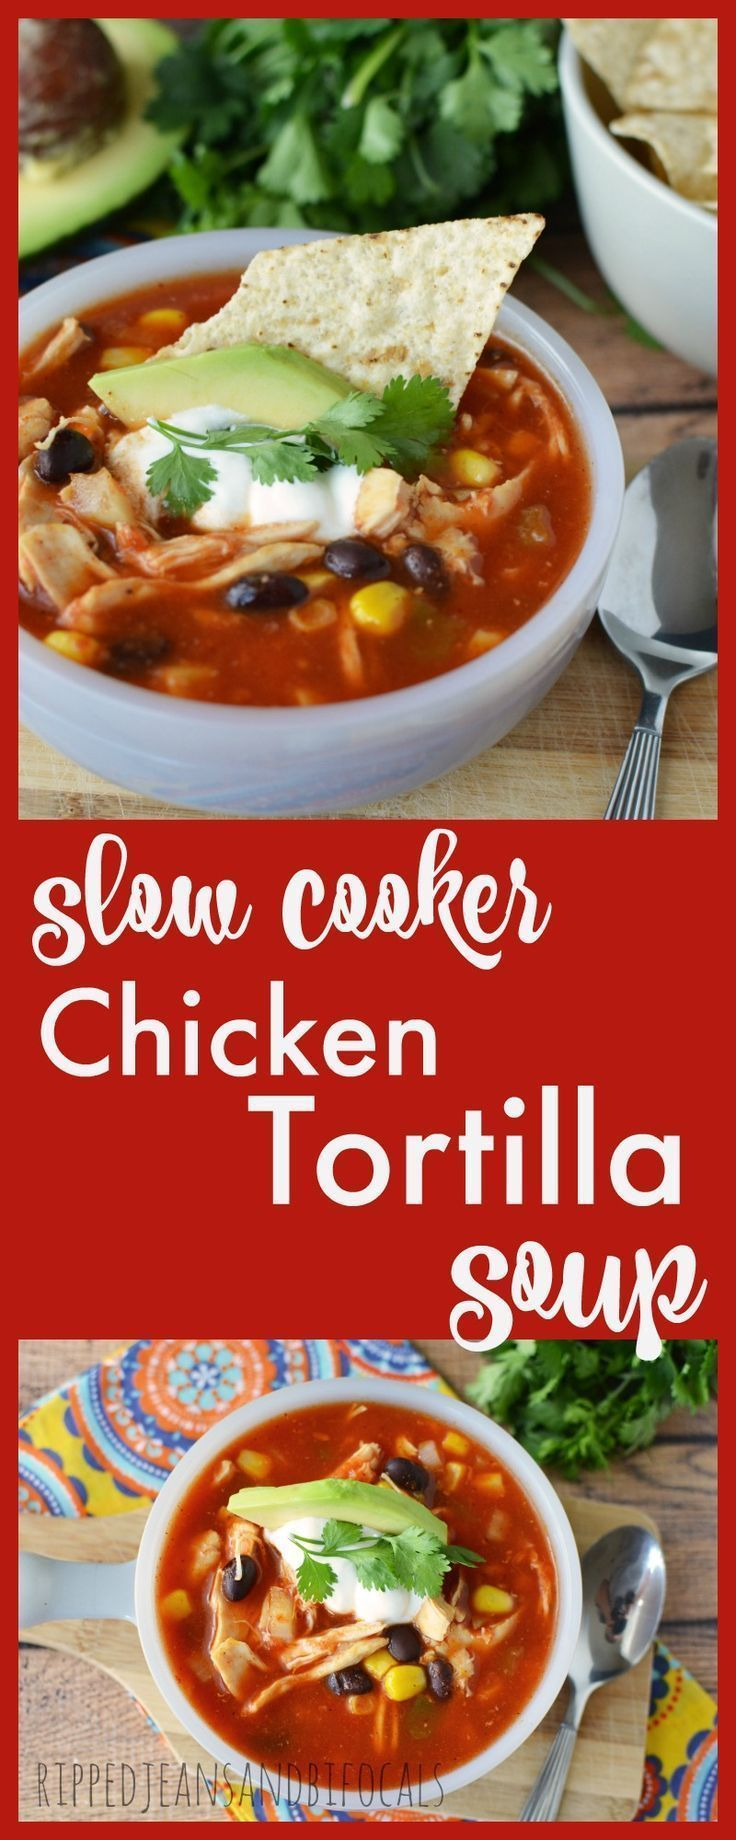 Slow Cooker Chicken Tortilla Soup images